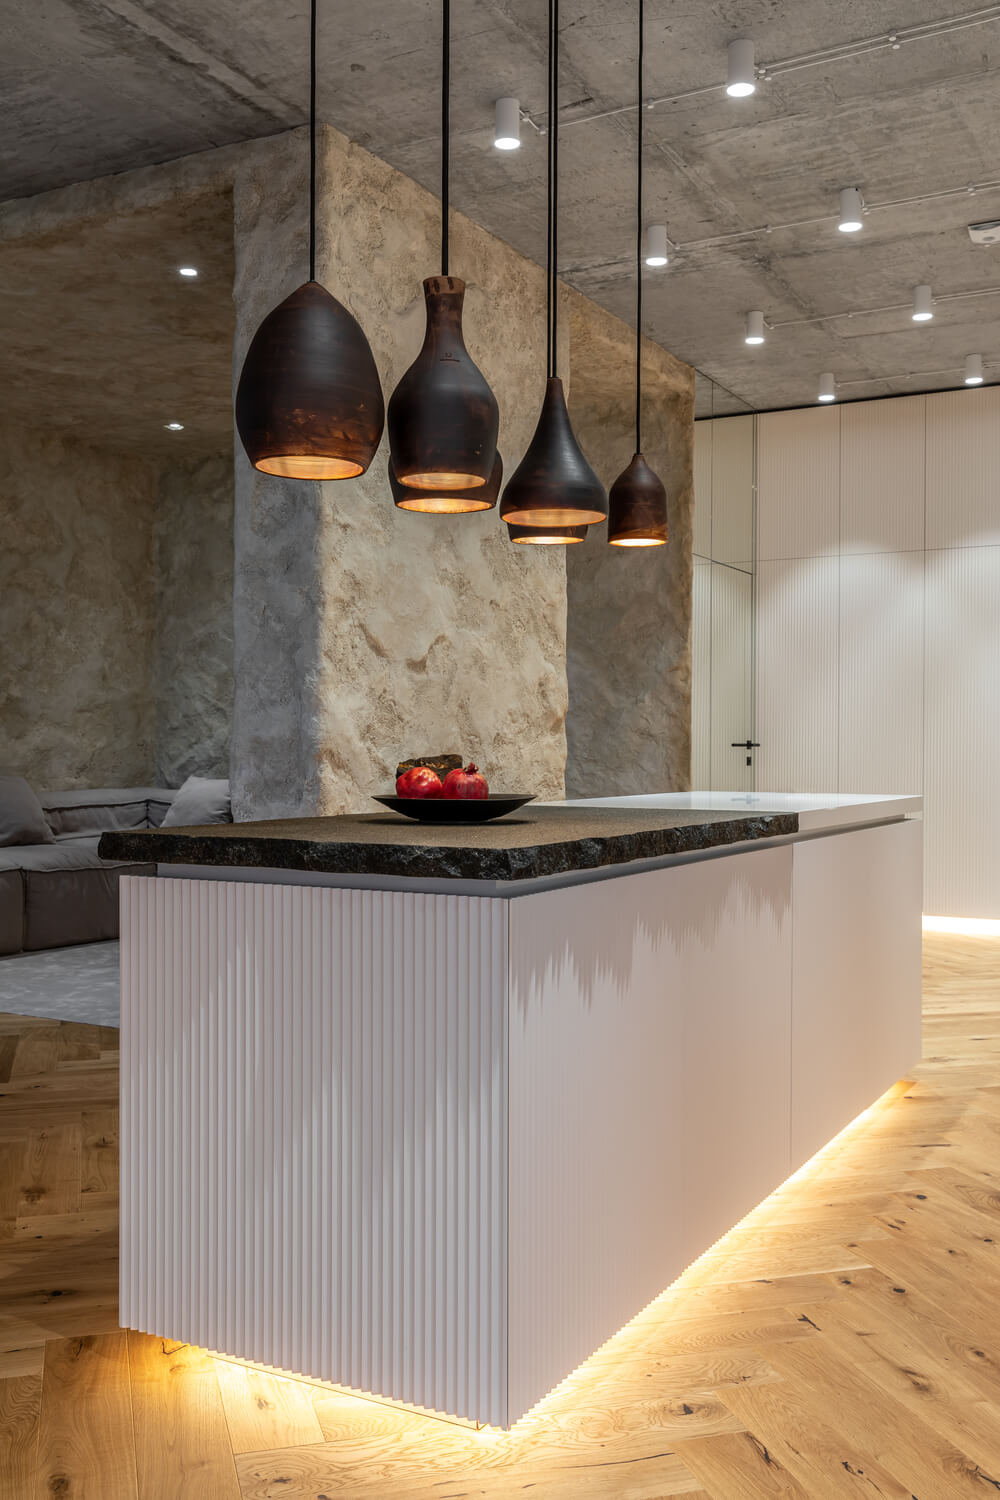 This is another view of the kitchen island showcasing more of its modern lighting underneath and its proximity to the living room walls.